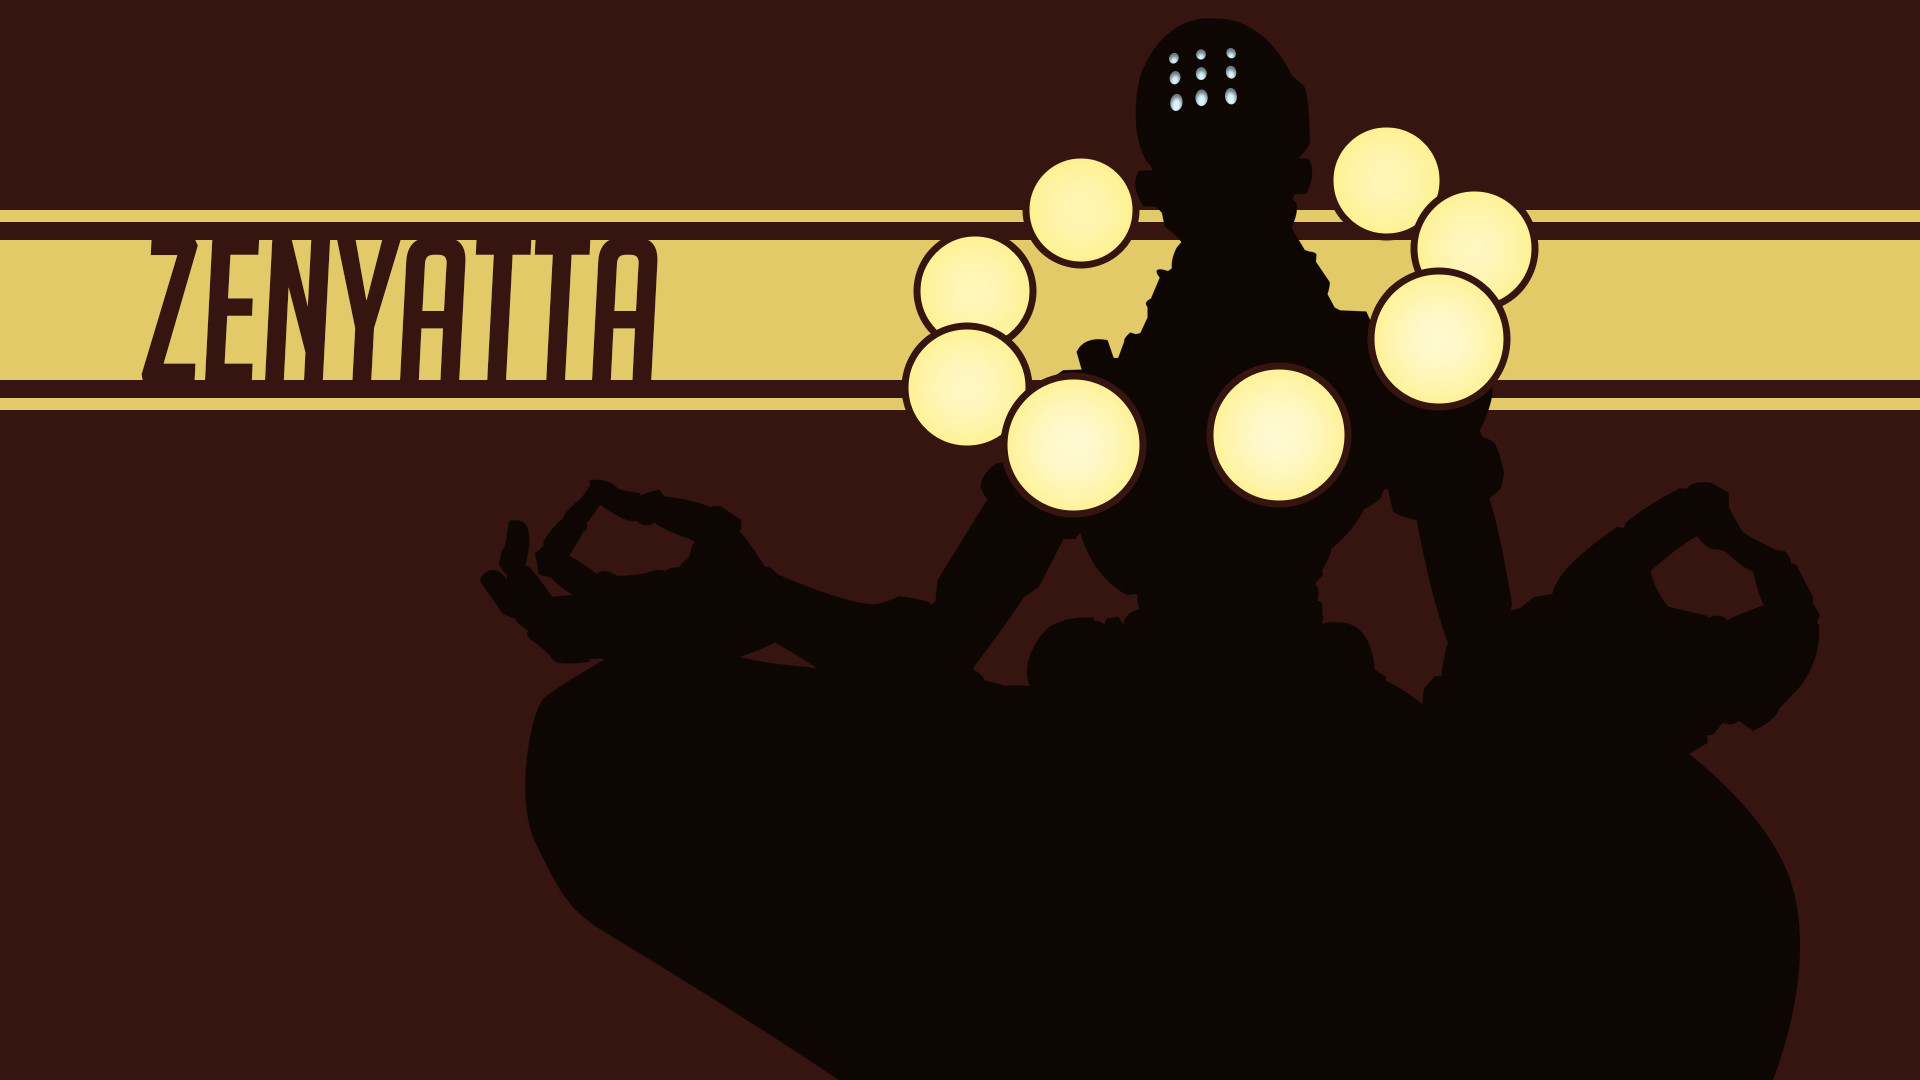 1920x1080 Simple Zenyatta Wallpaper (Overwatch)